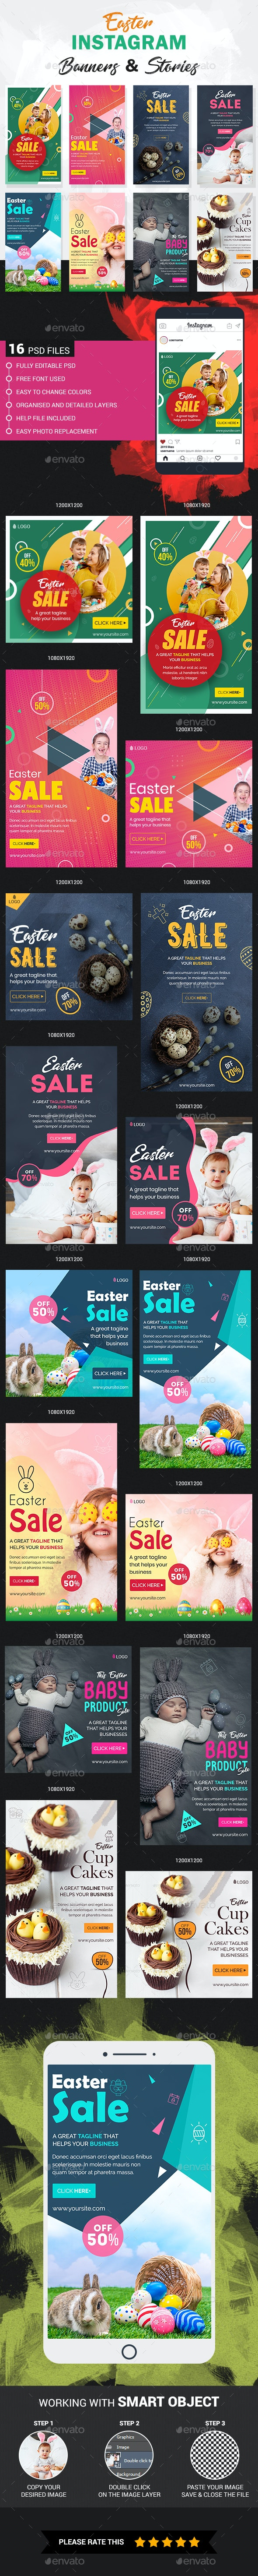 Easter Instagram Story and Banner Templates - Social Media Web Elements